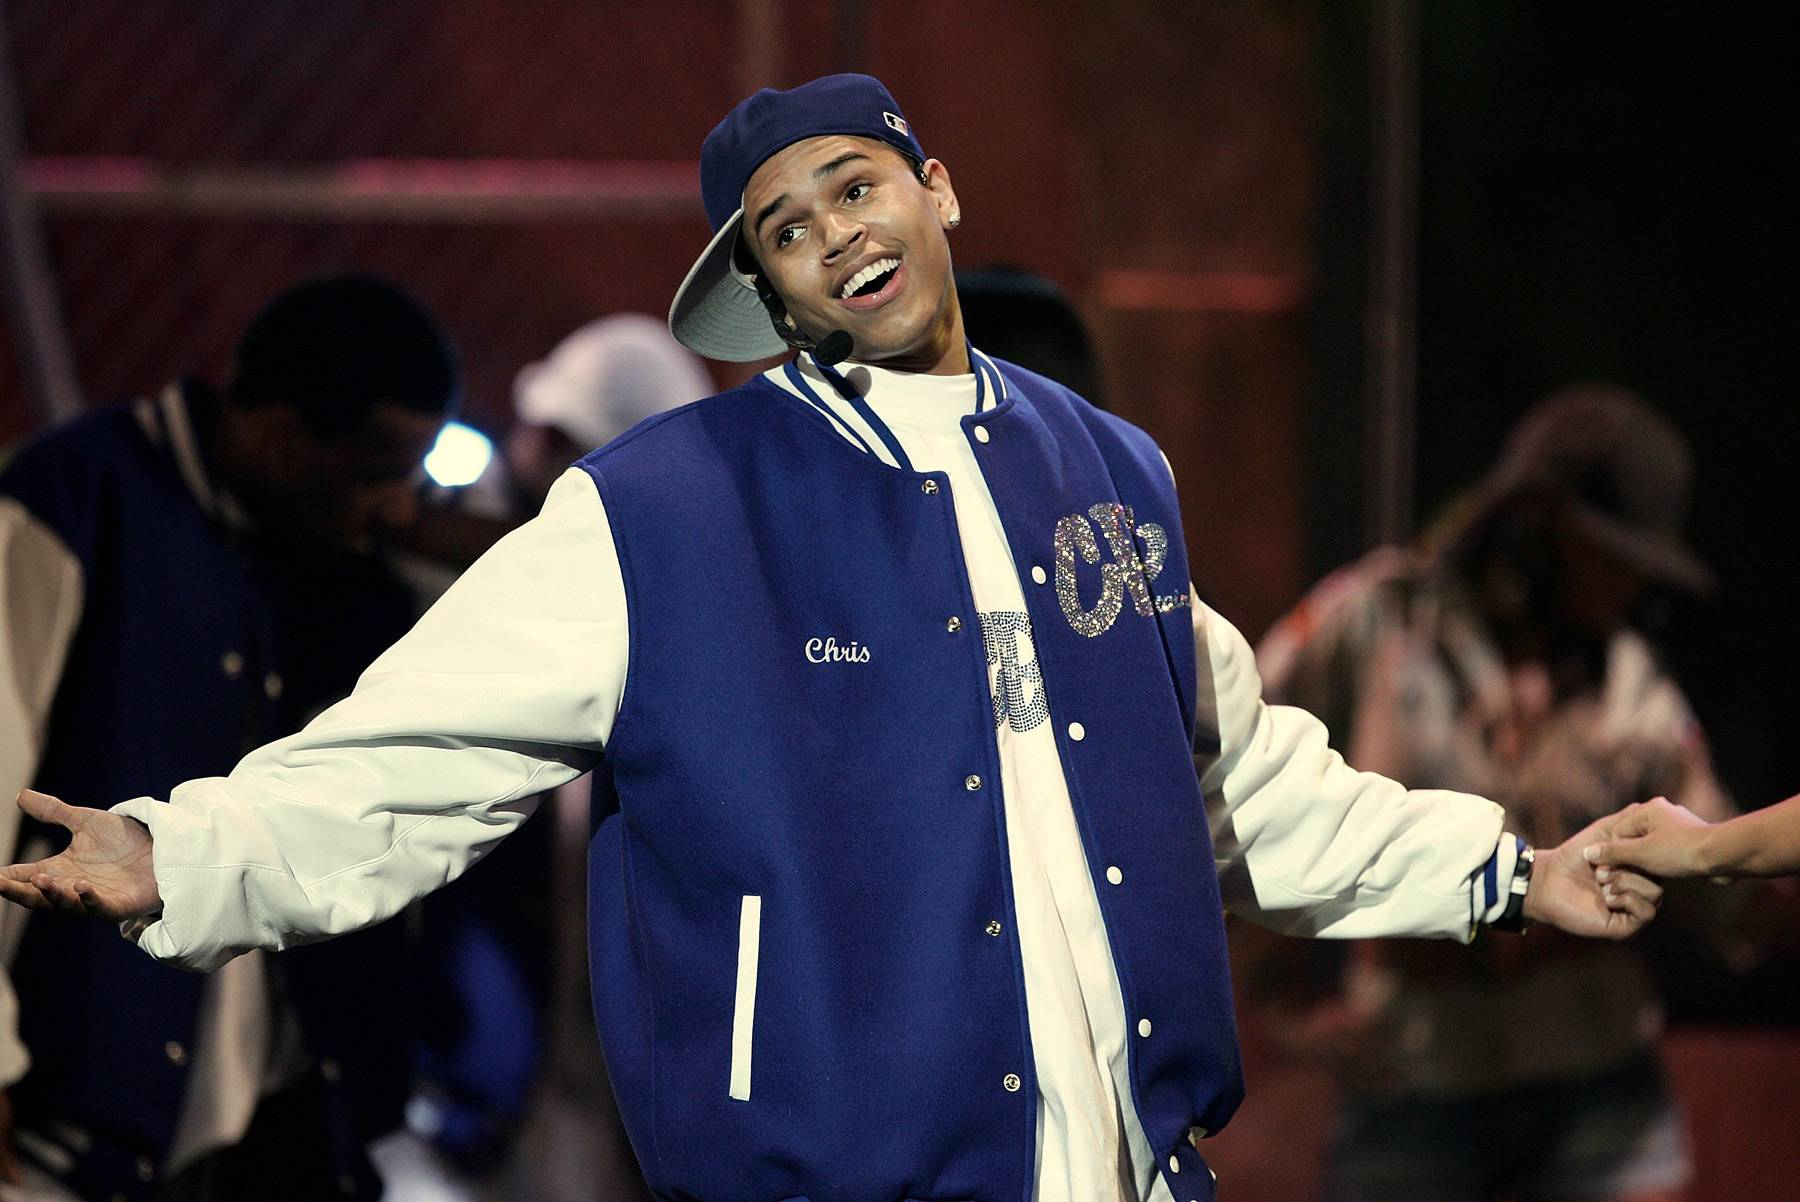 Time Will Tell - Young singer Chris Brown performs on stage at the 20th Annual Soul Train Awards, showing how much he's been paying attention to artists like Michael Jackson, with his on-fire dance moves and high-pitched vocals. (Photo: Vince Bucci/Getty Images)